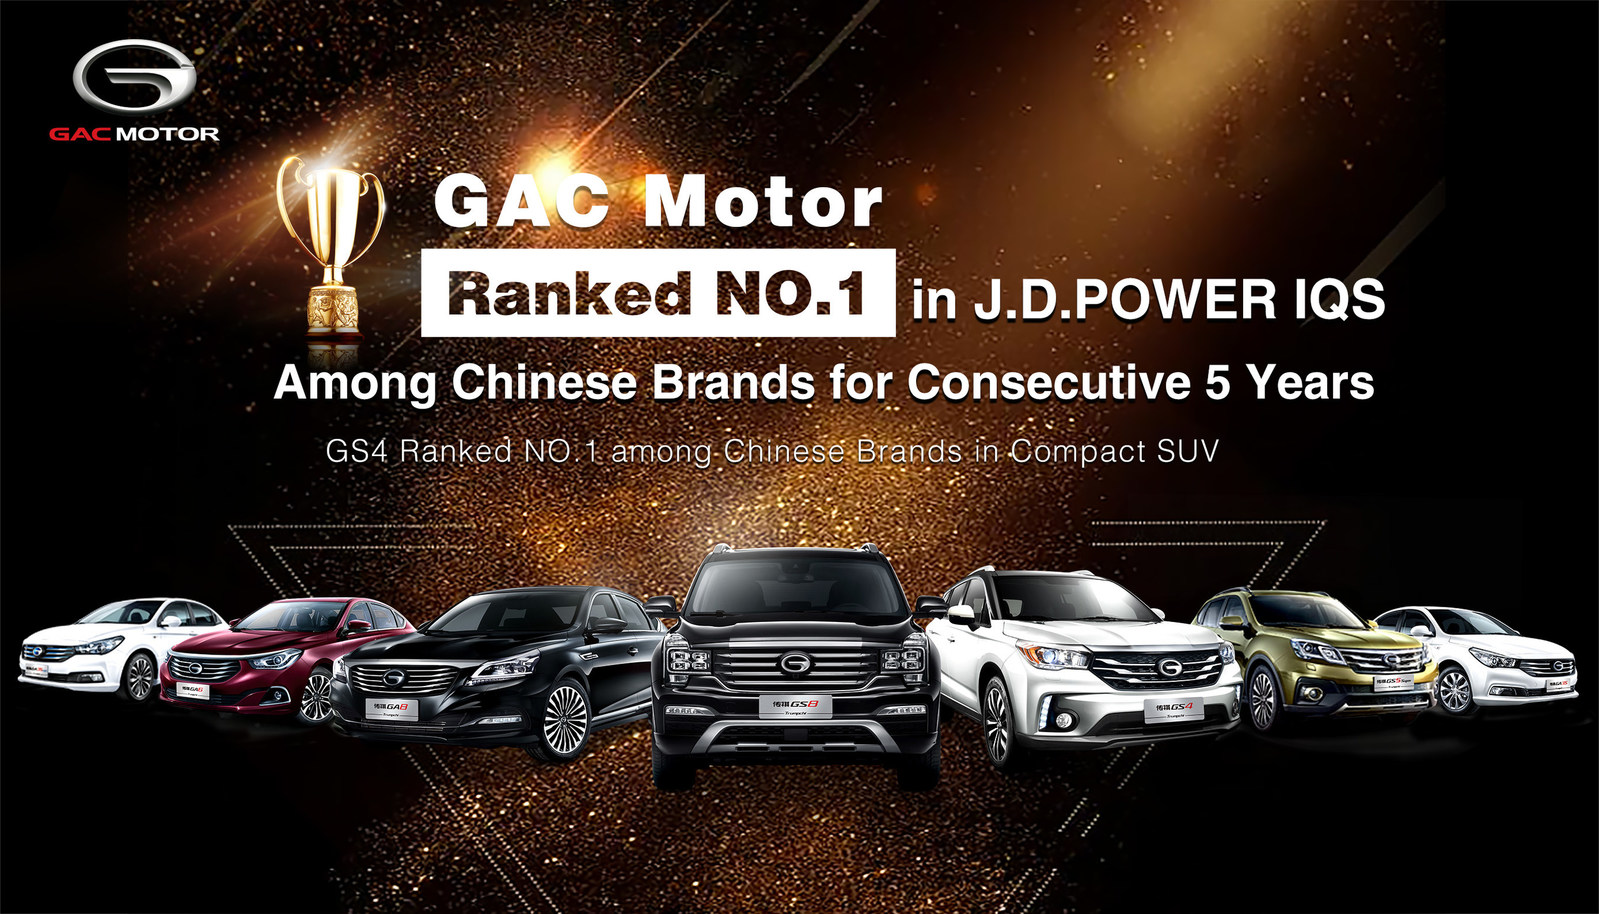 Gac motor ranked no 1 in j d power iqs among chinese brands for the fifth